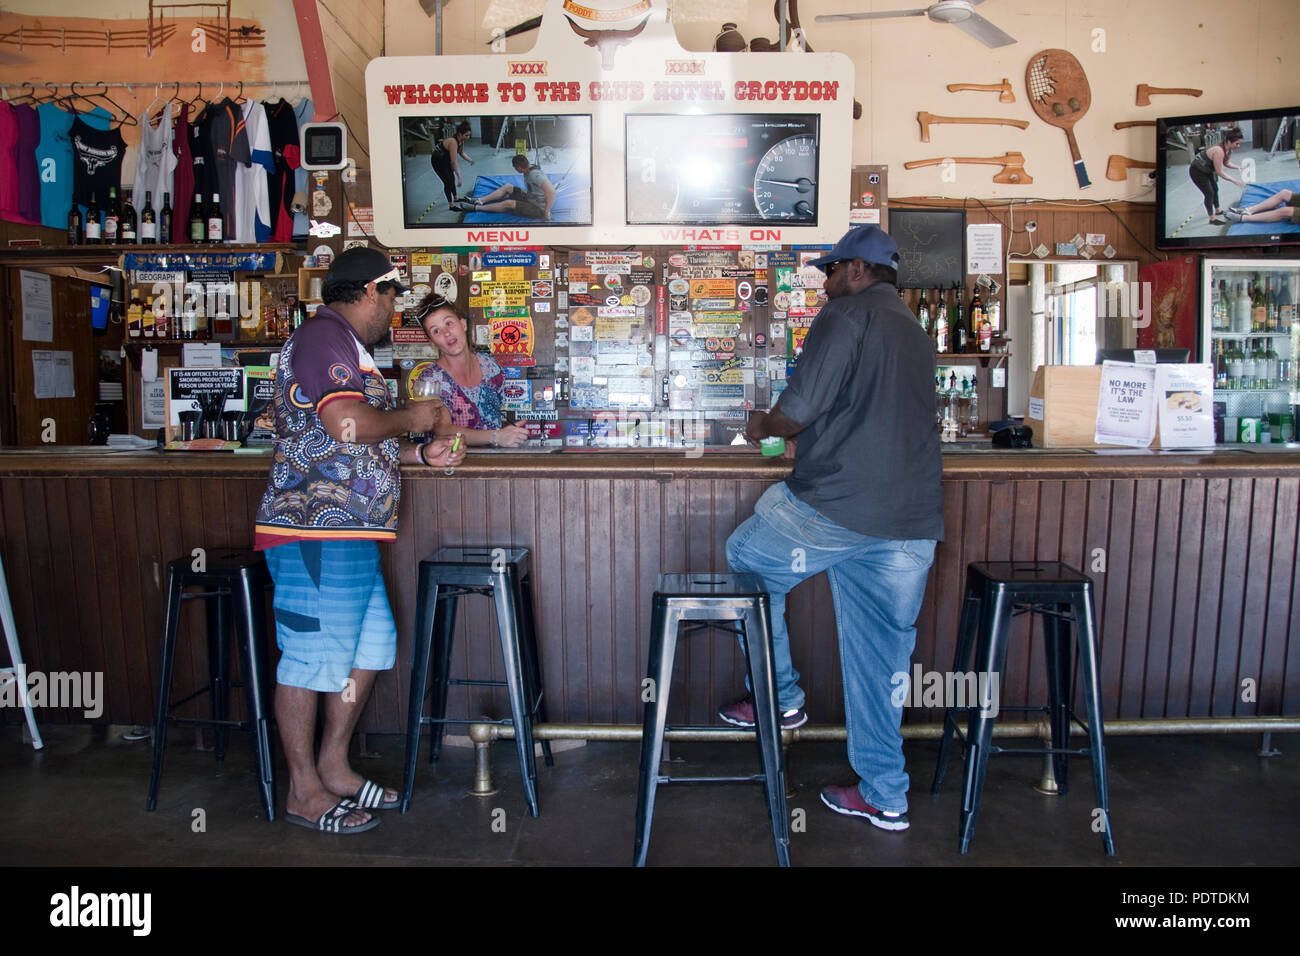 Two aboriginal stockmen, known as ringers in Queensland, drink beer at the Poddy Dodger Bar in the Club Hotel in outback town of Croyden, Queensland. - Stock Image